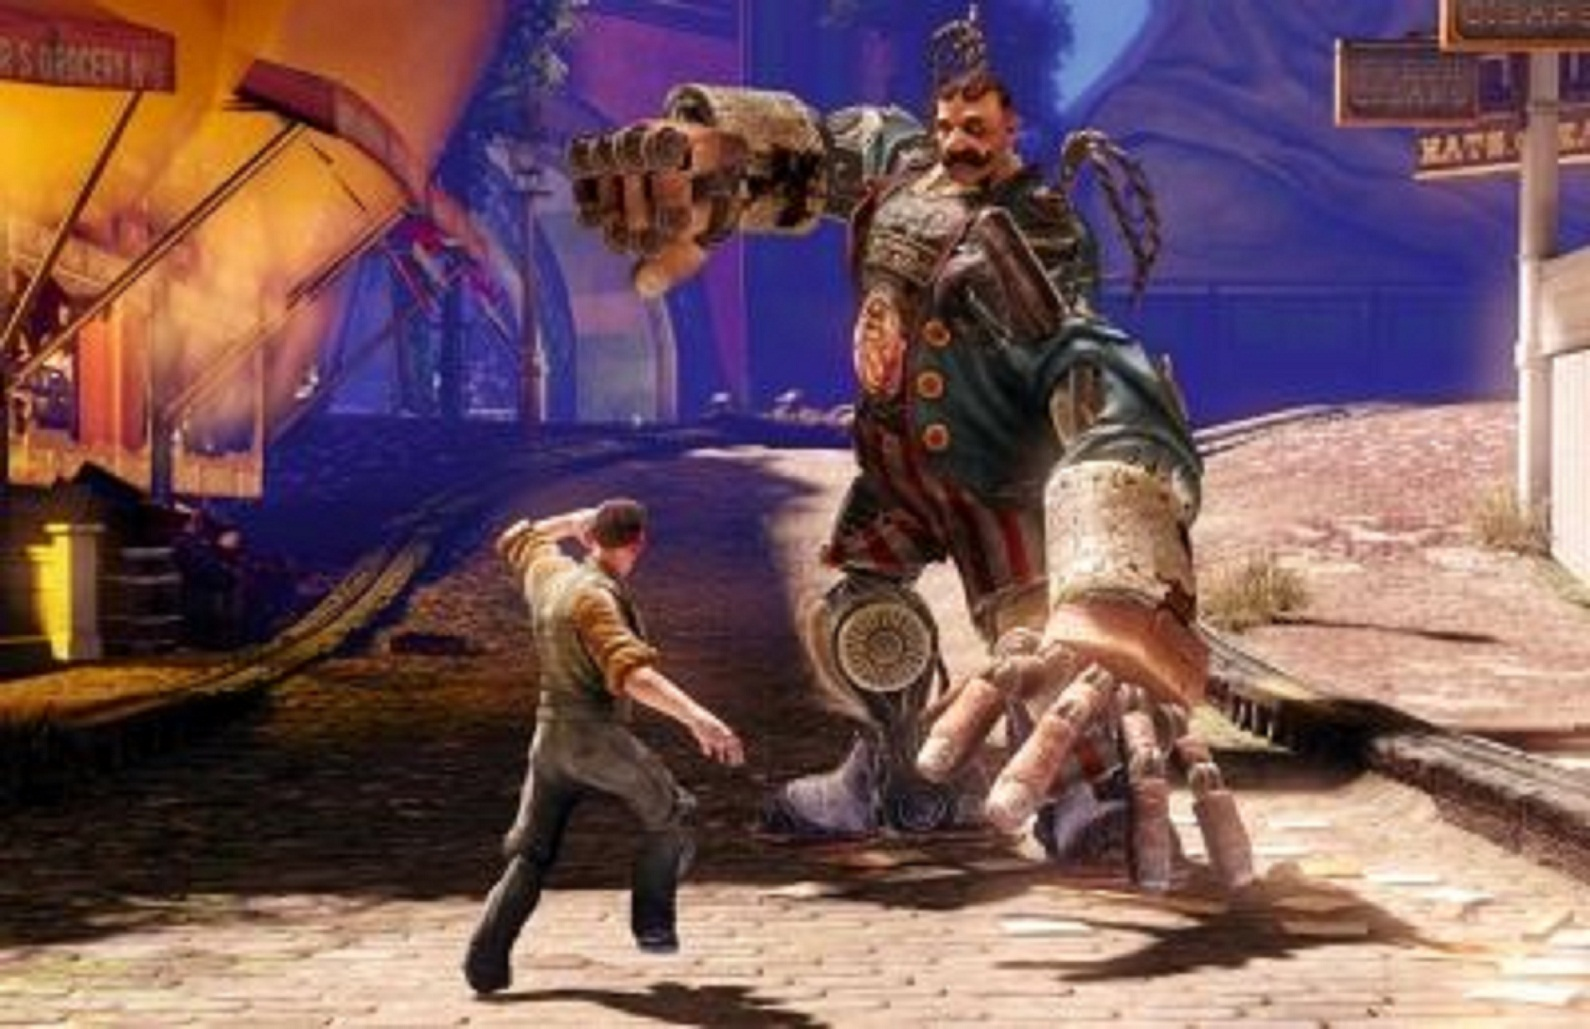 New Job Listing Suggests A New Feature For BioShock 3, Semi-Open World Activities